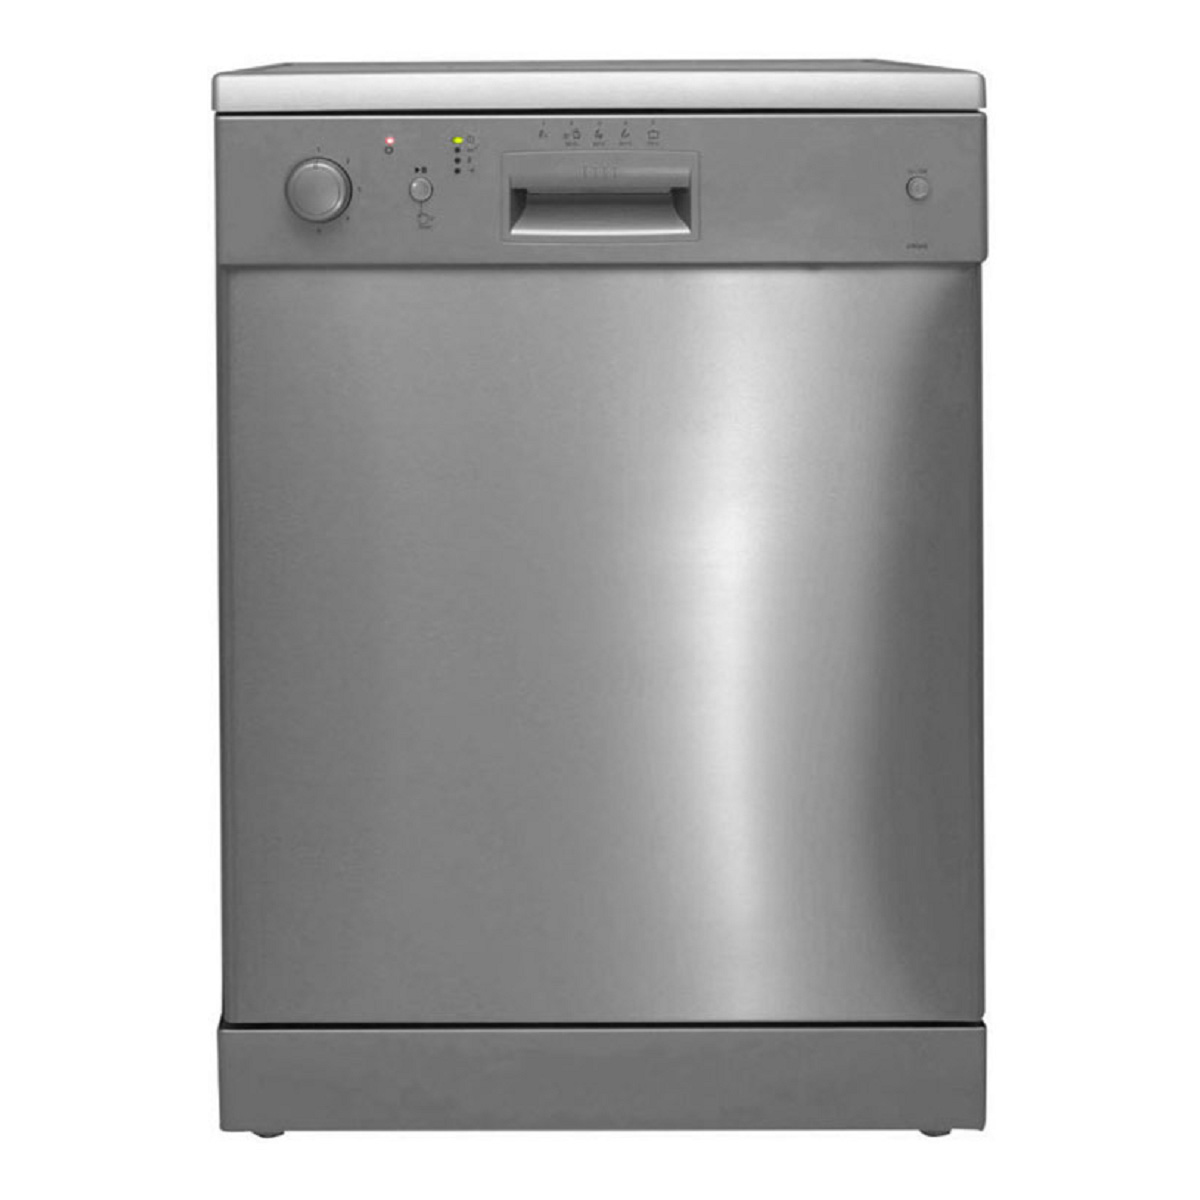 Arc AD14S Freestanding Dishwasher